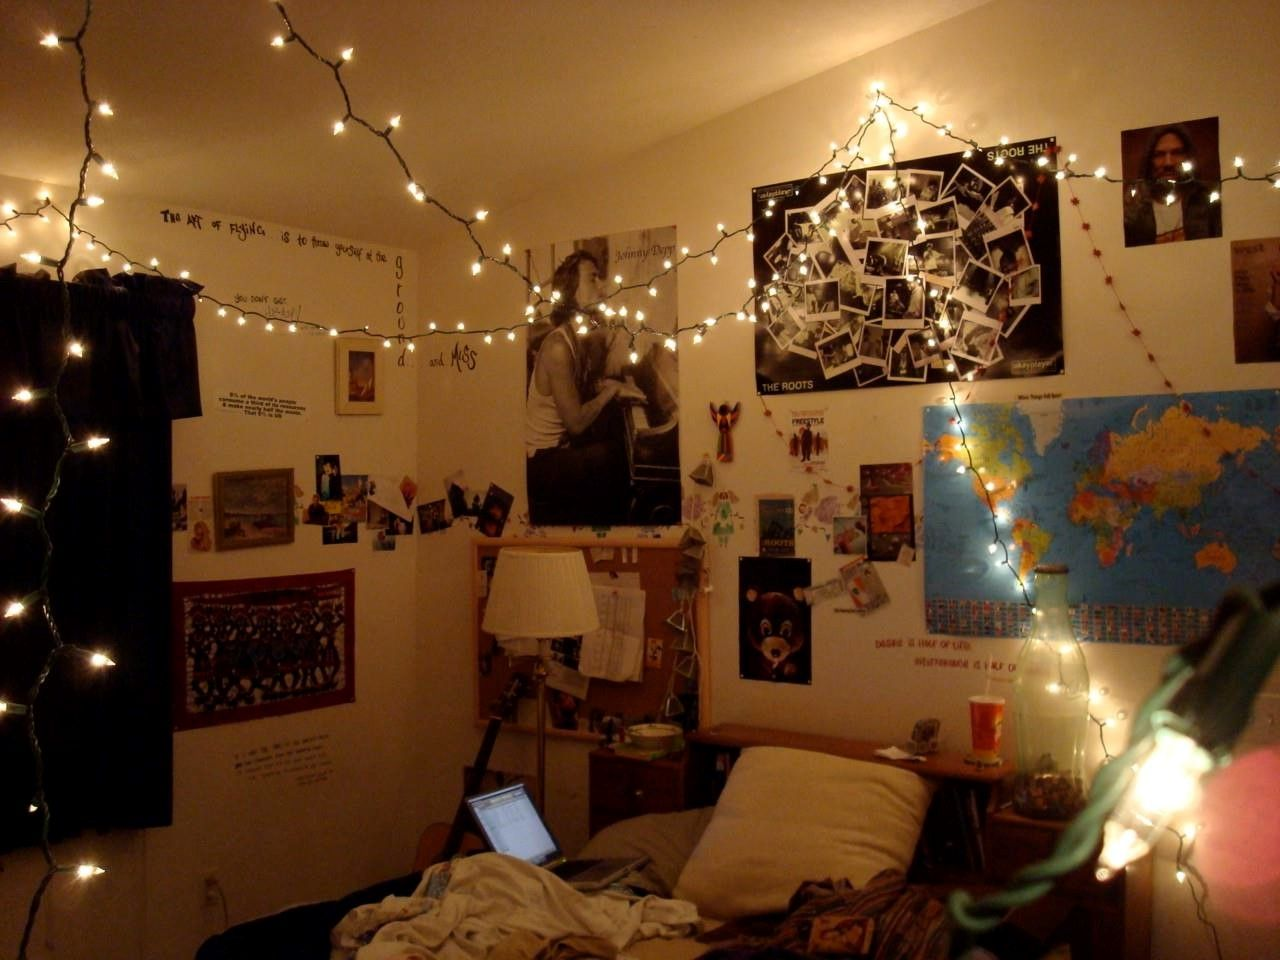 Dream Bedrooms For Teenage Girls Tumblr cool bedrooms for teenage girls tumblr lights | interior designs